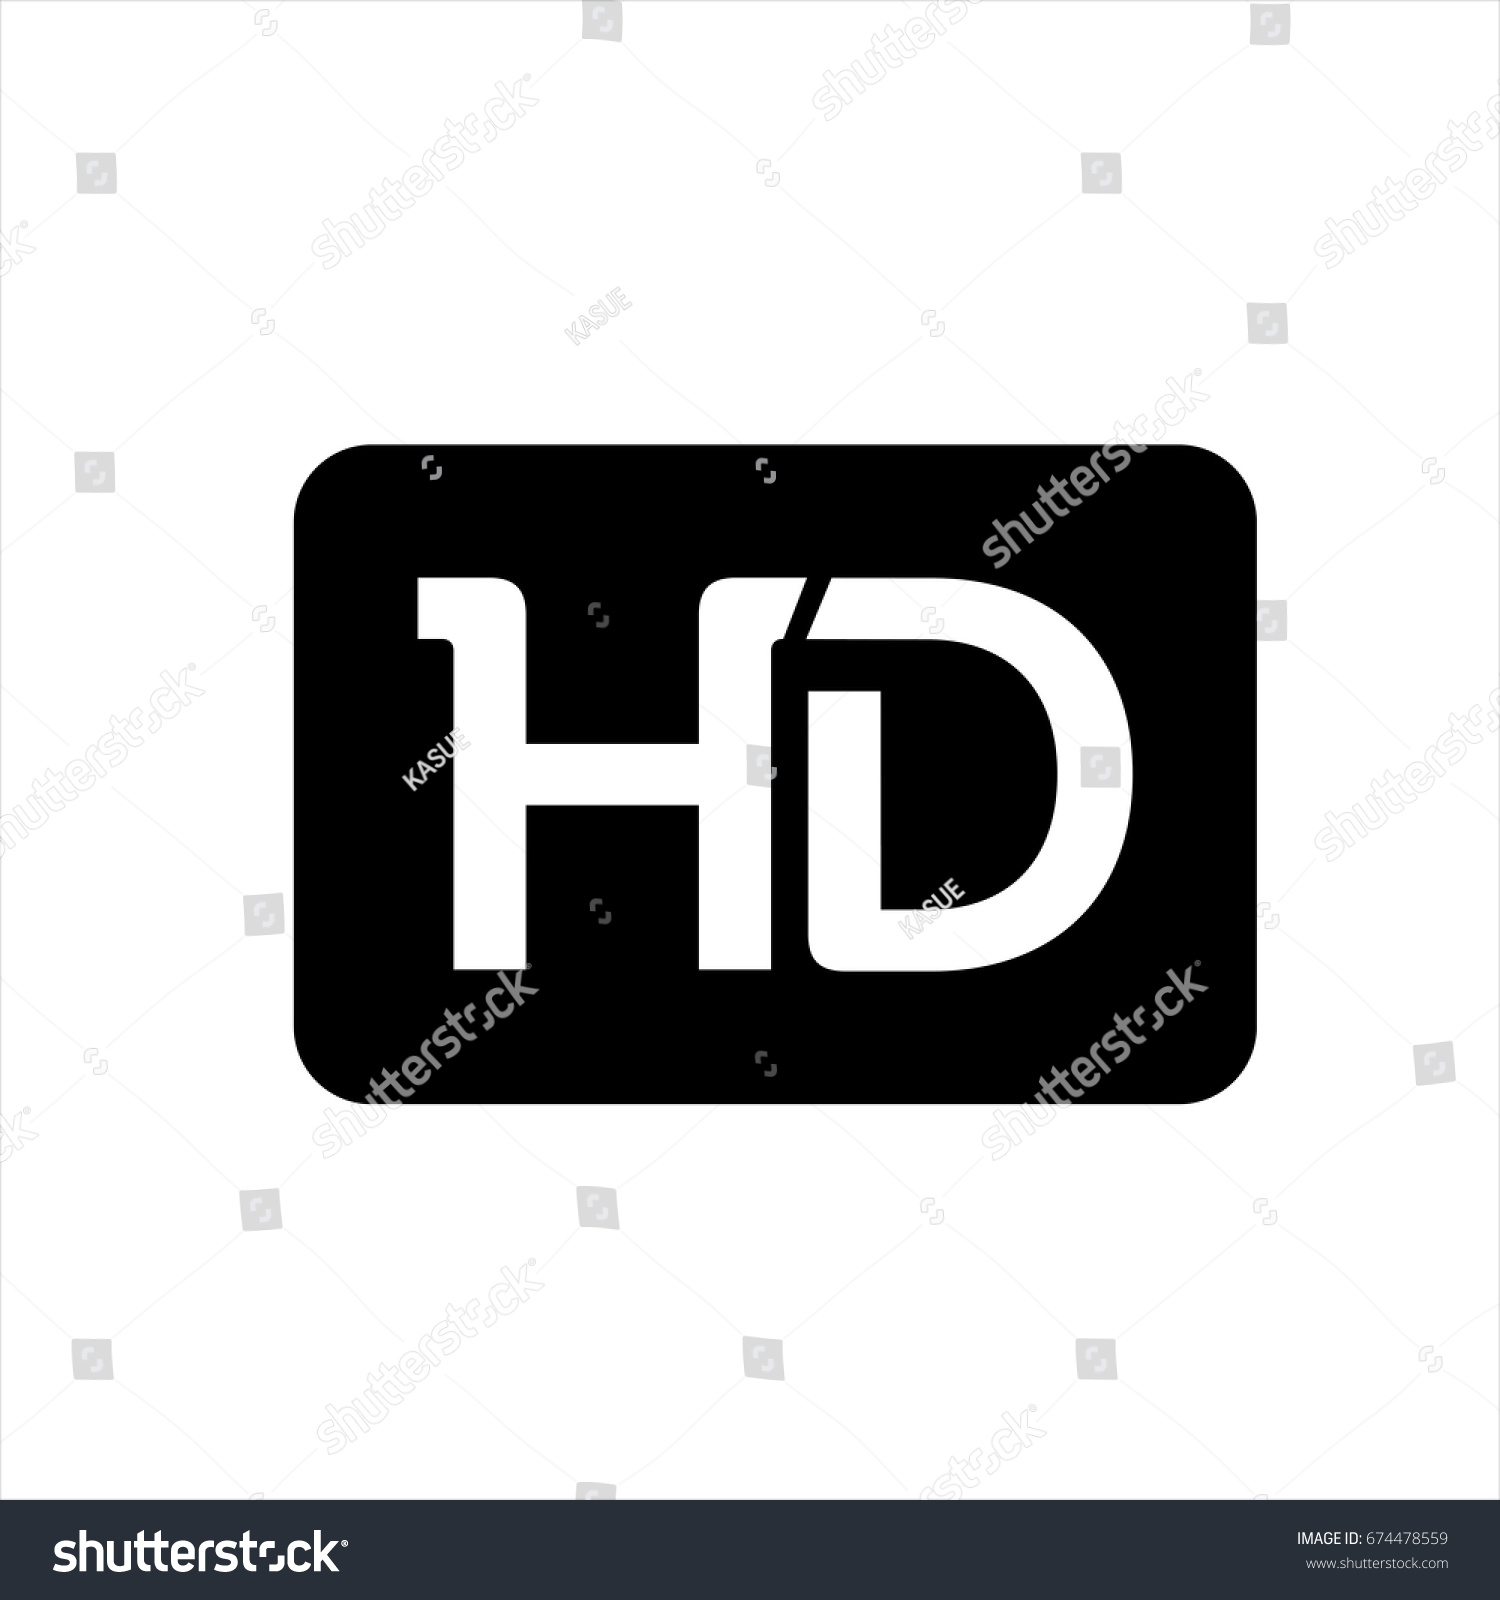 hd icon trendy flat style isolated stock photo (photo, vector